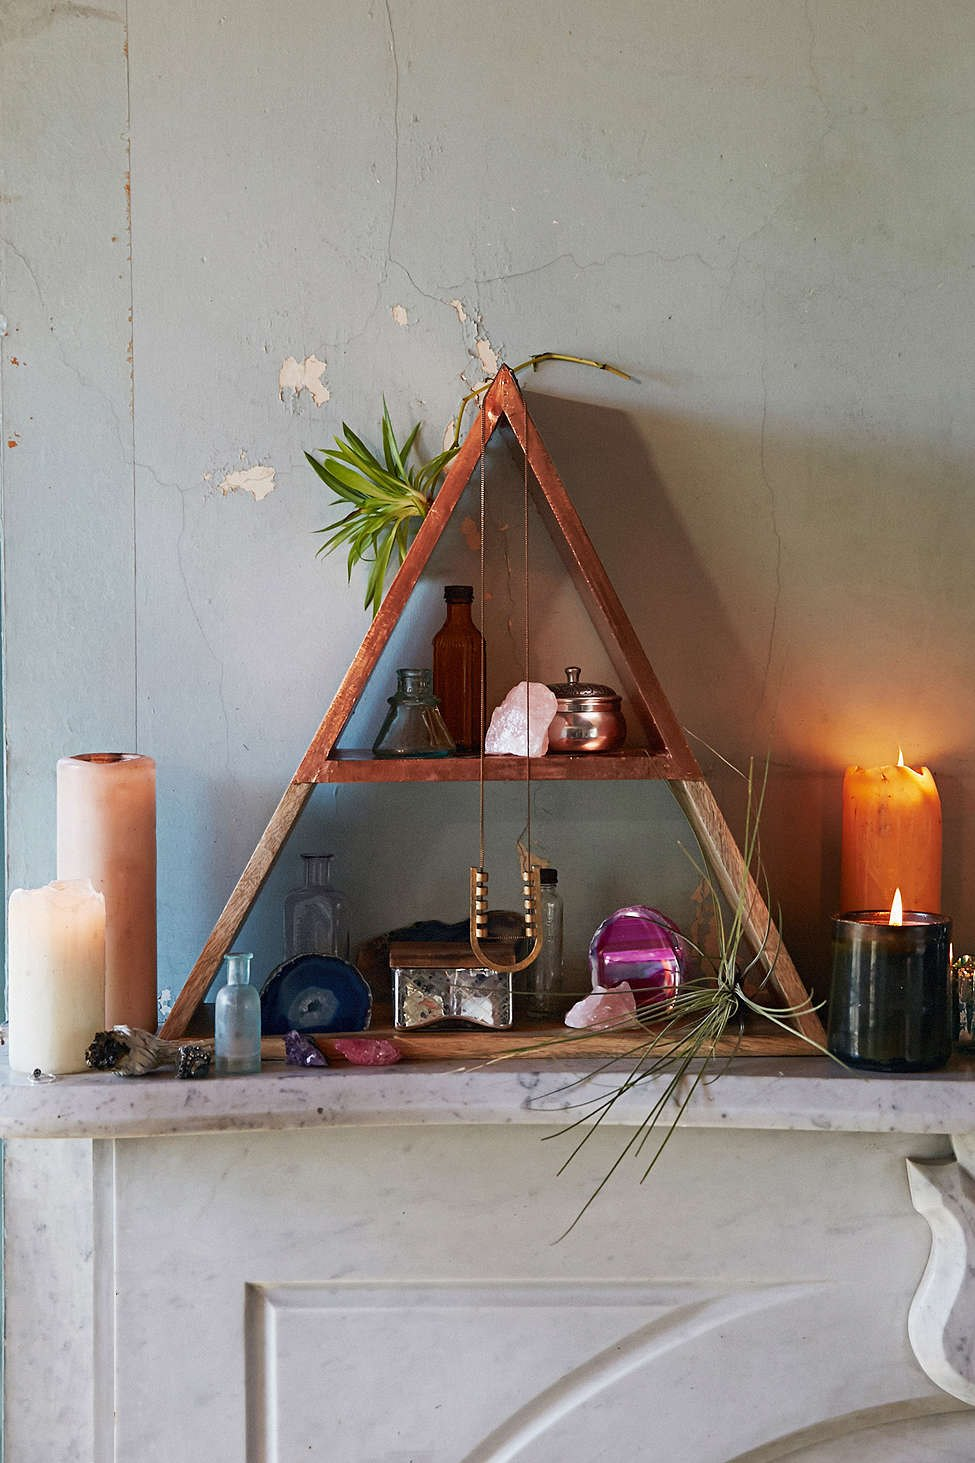 Pyramid shelving from Urban Outfitters